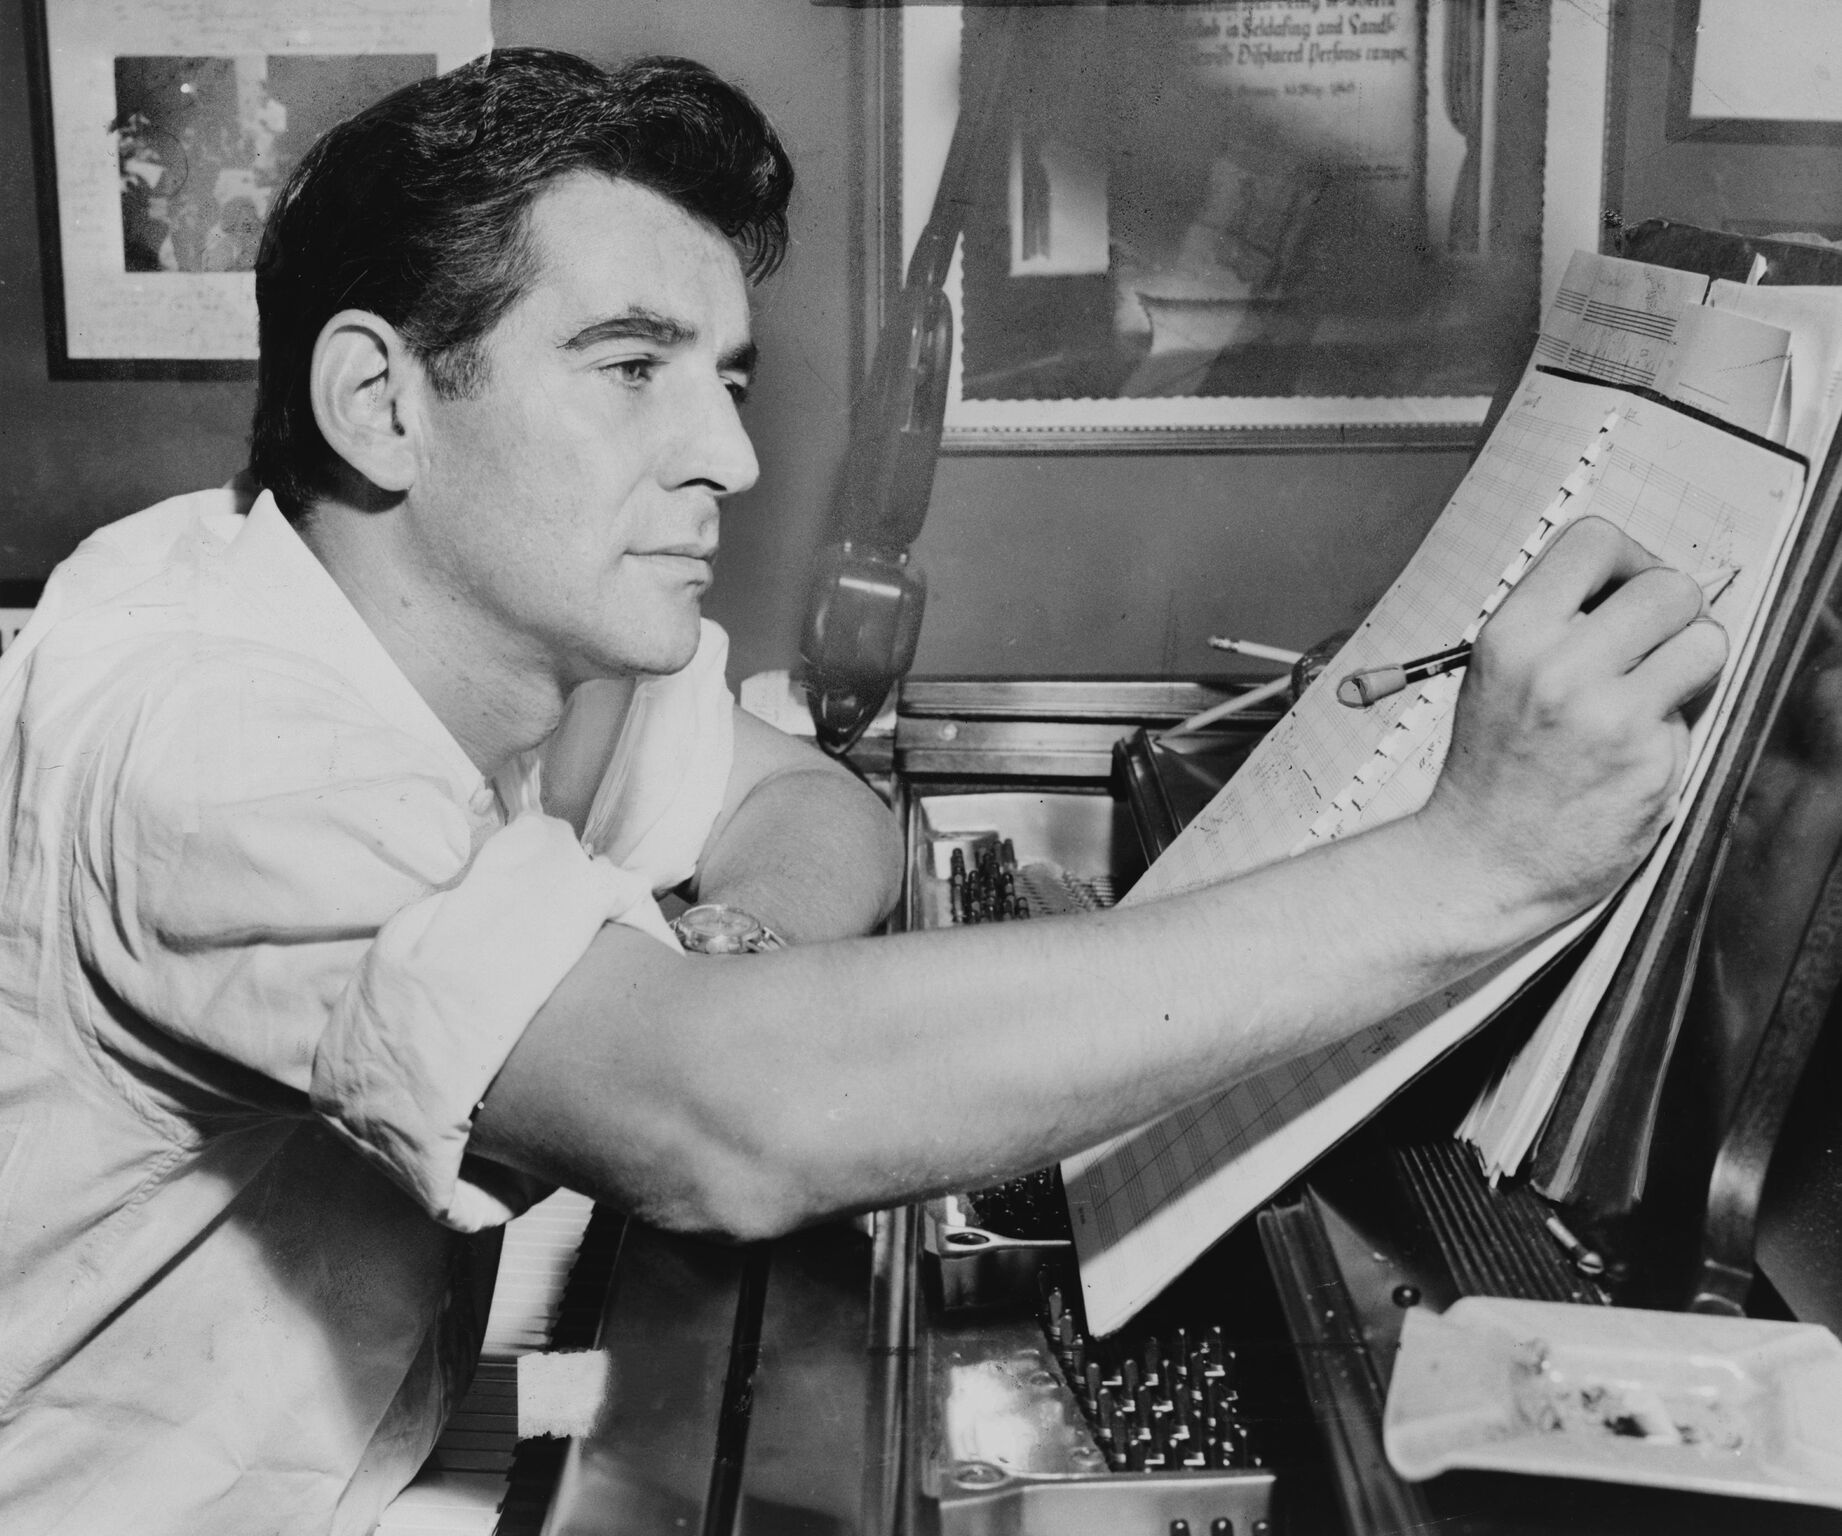 Caption: Leonard Bernstein, Credit: Al Ravenna, 1955, courtesy of the Library of Congress